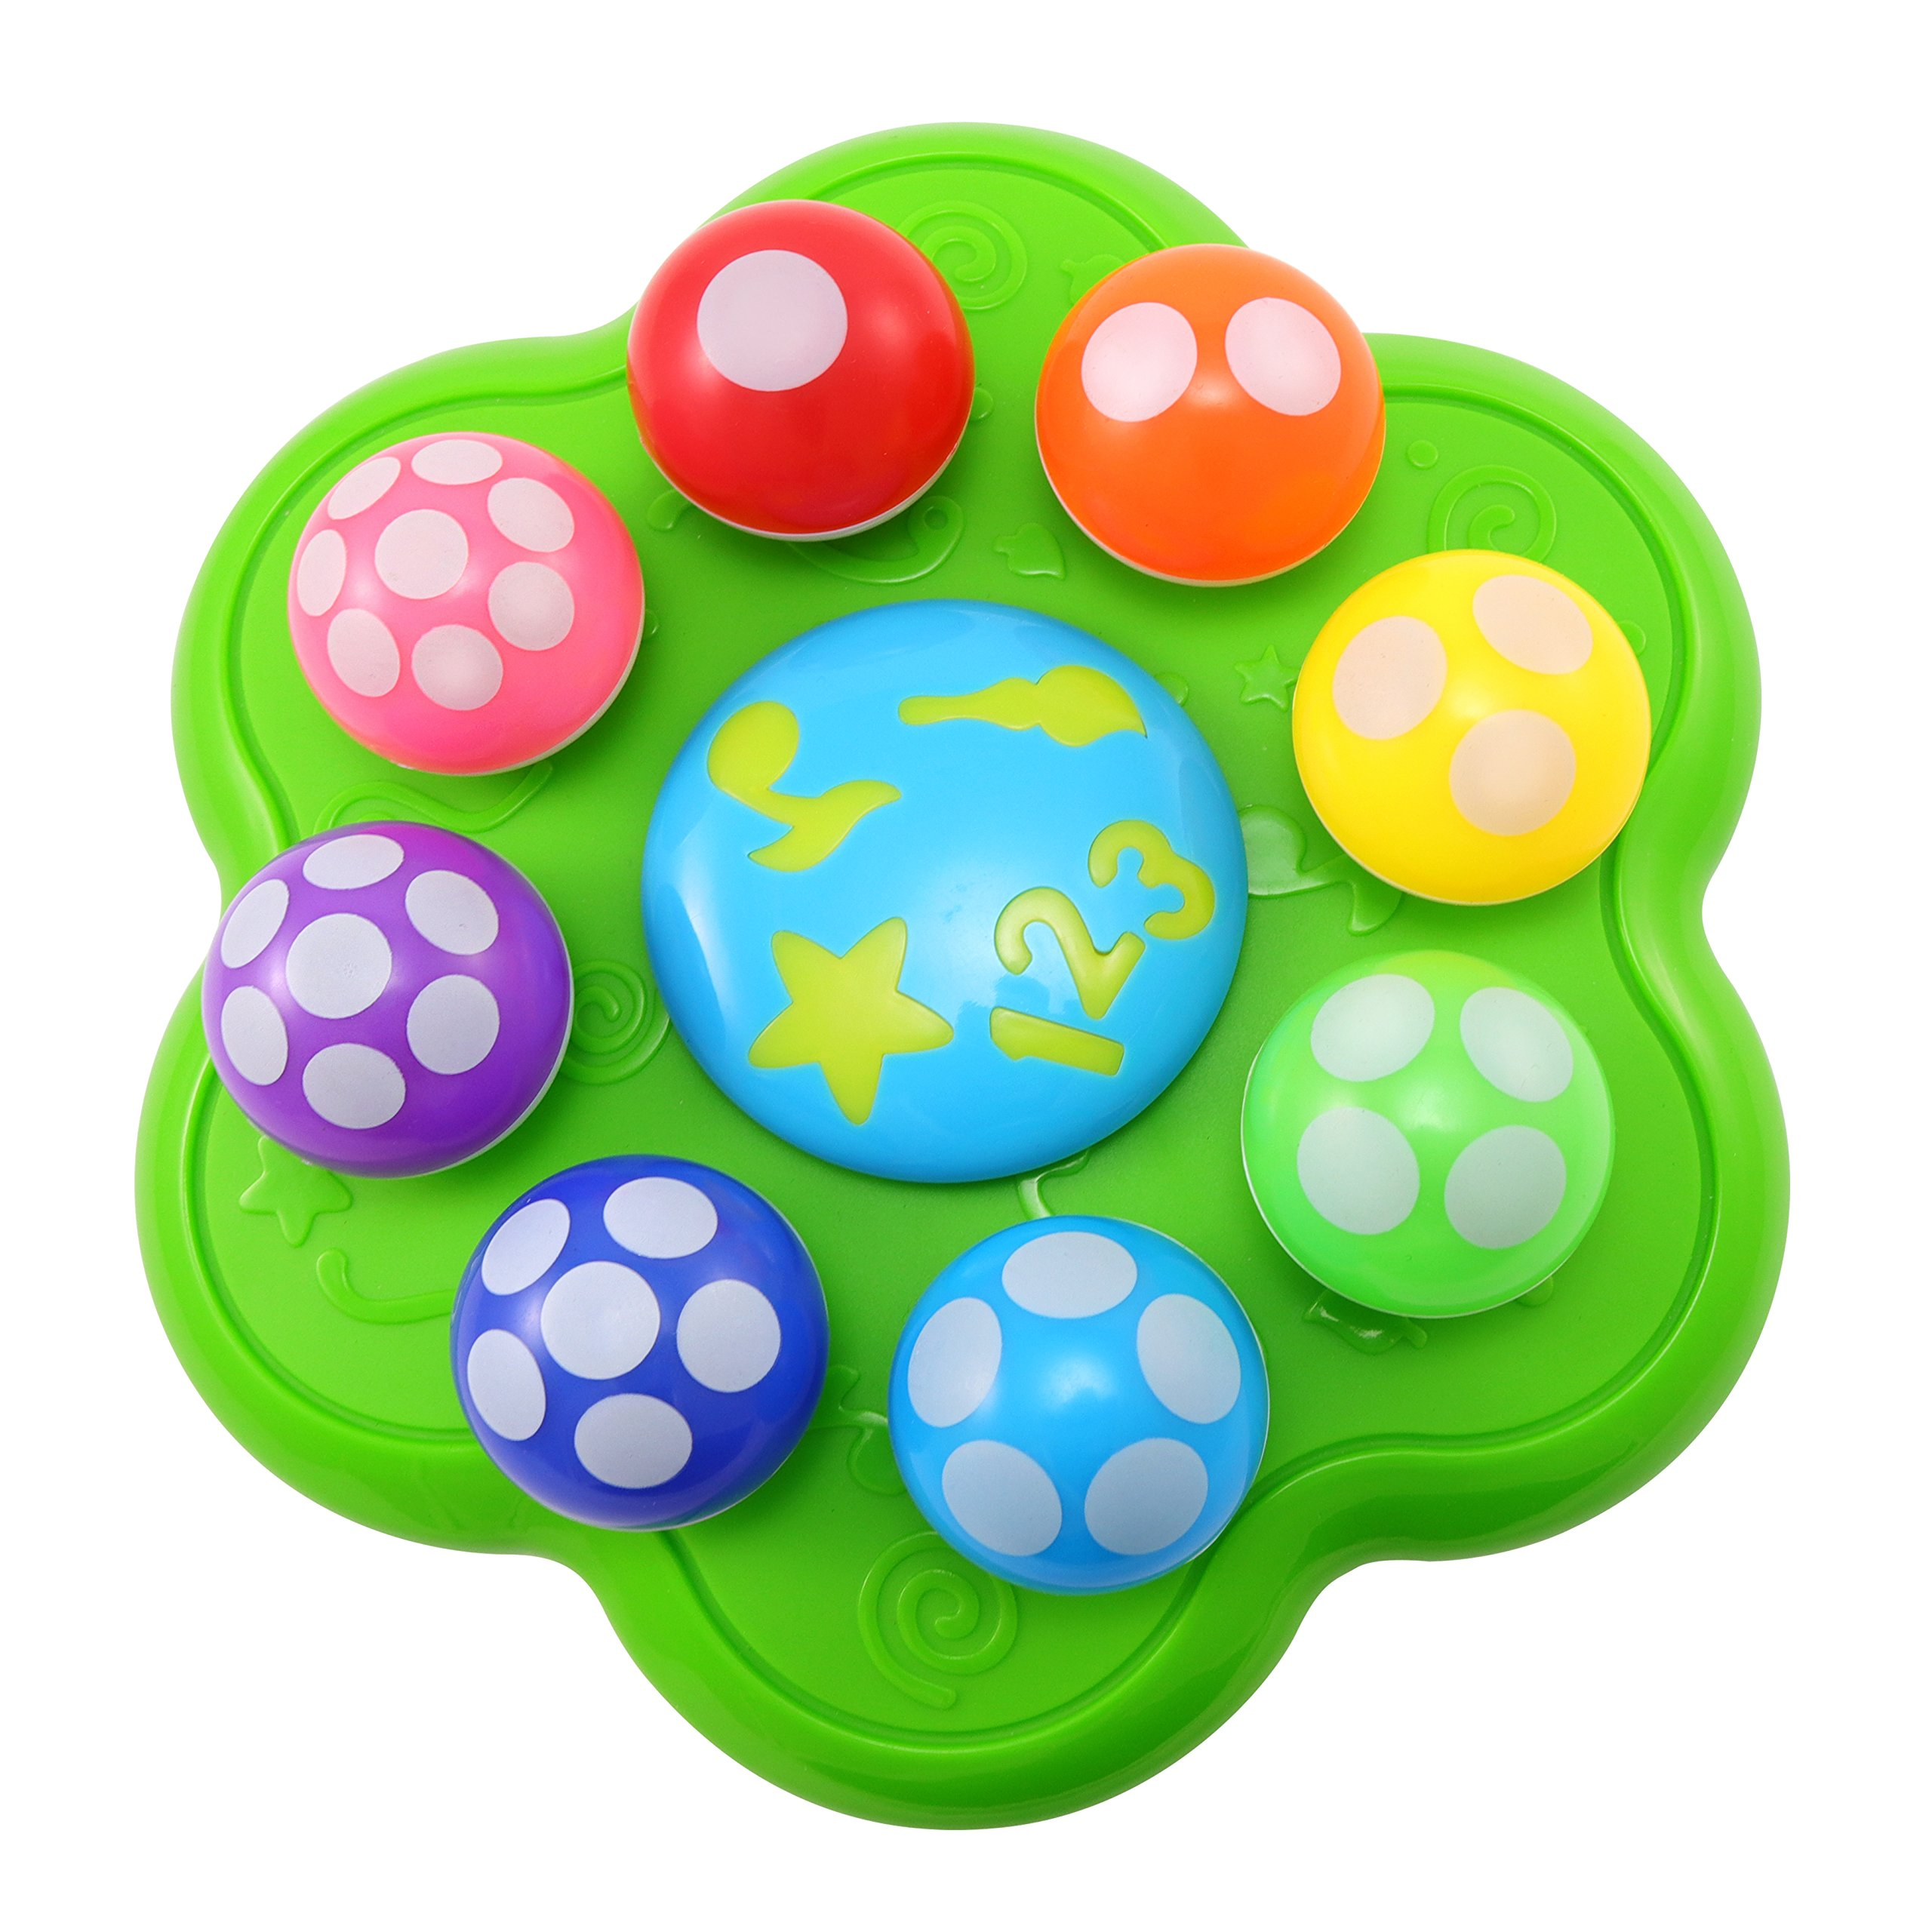 BEST LEARNING Mushroom Garden - Interactive Educational Light-Up Toddler Toys for 1 to 3 Years Old Infants & Toddlers - Colors, Numbers, Games & Music for Kids by BEST LEARNING (Image #4)